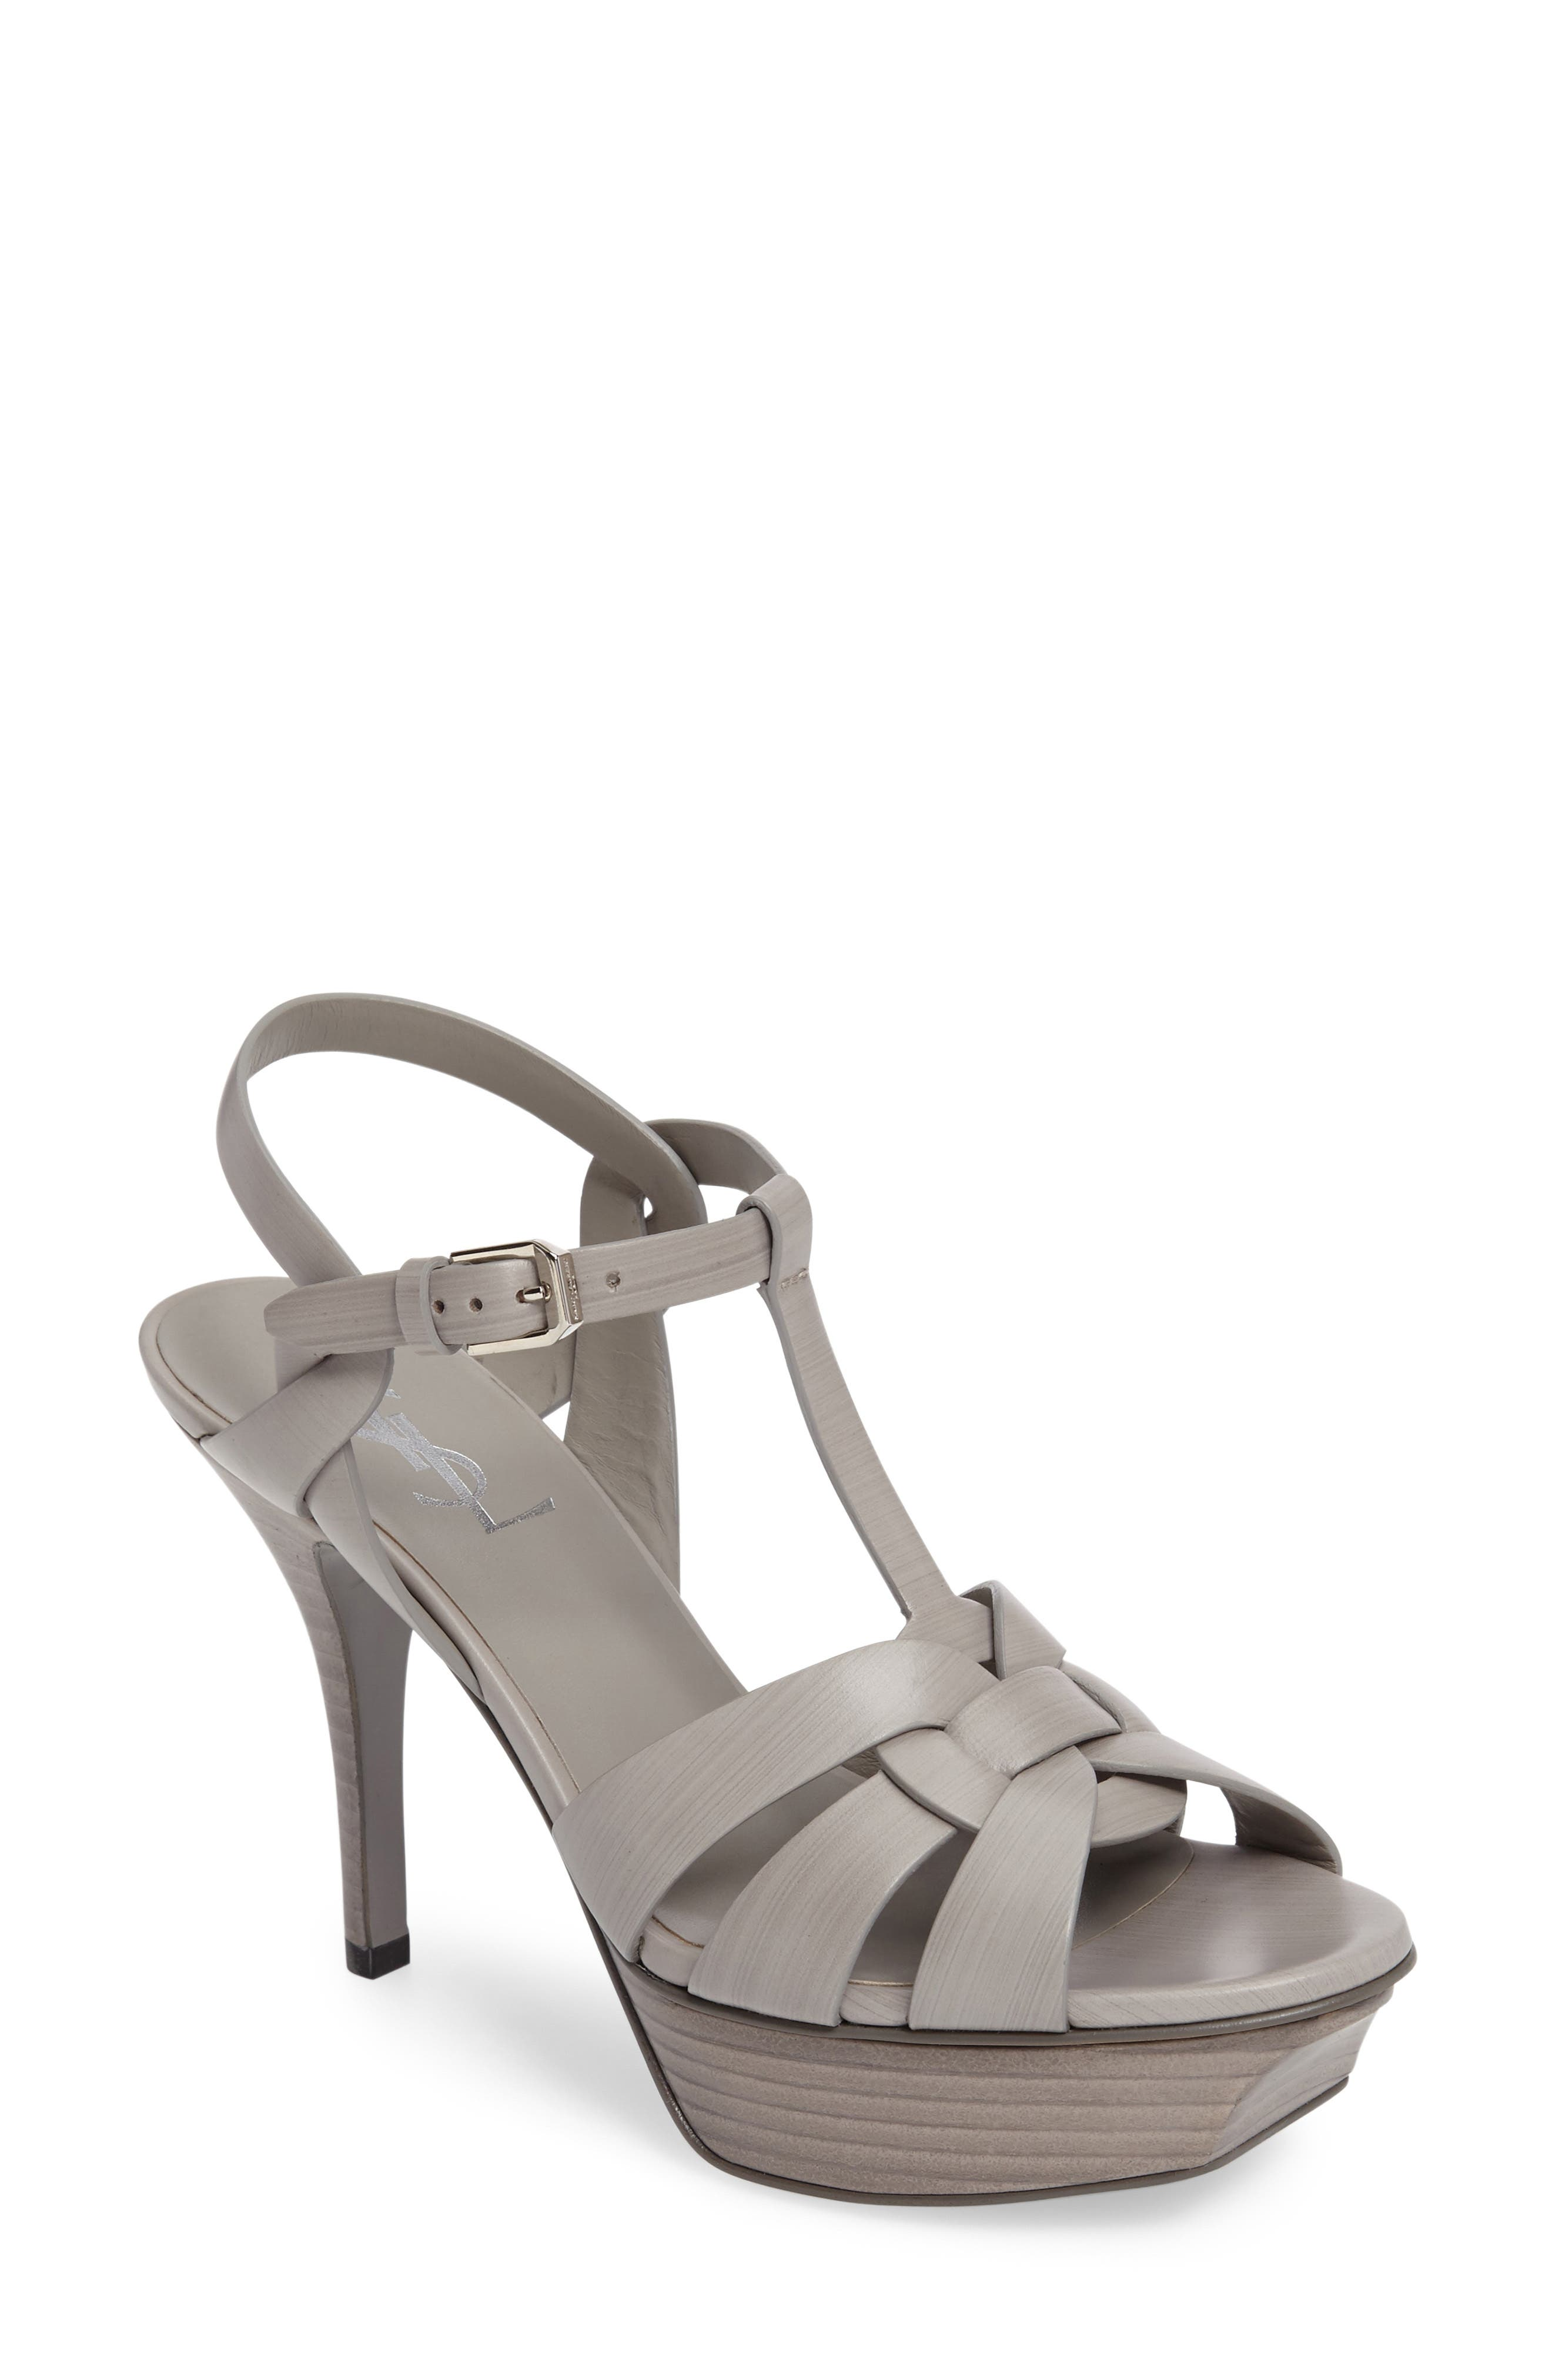 Saint Laurent Tribute T-Strap Sandal (Women)